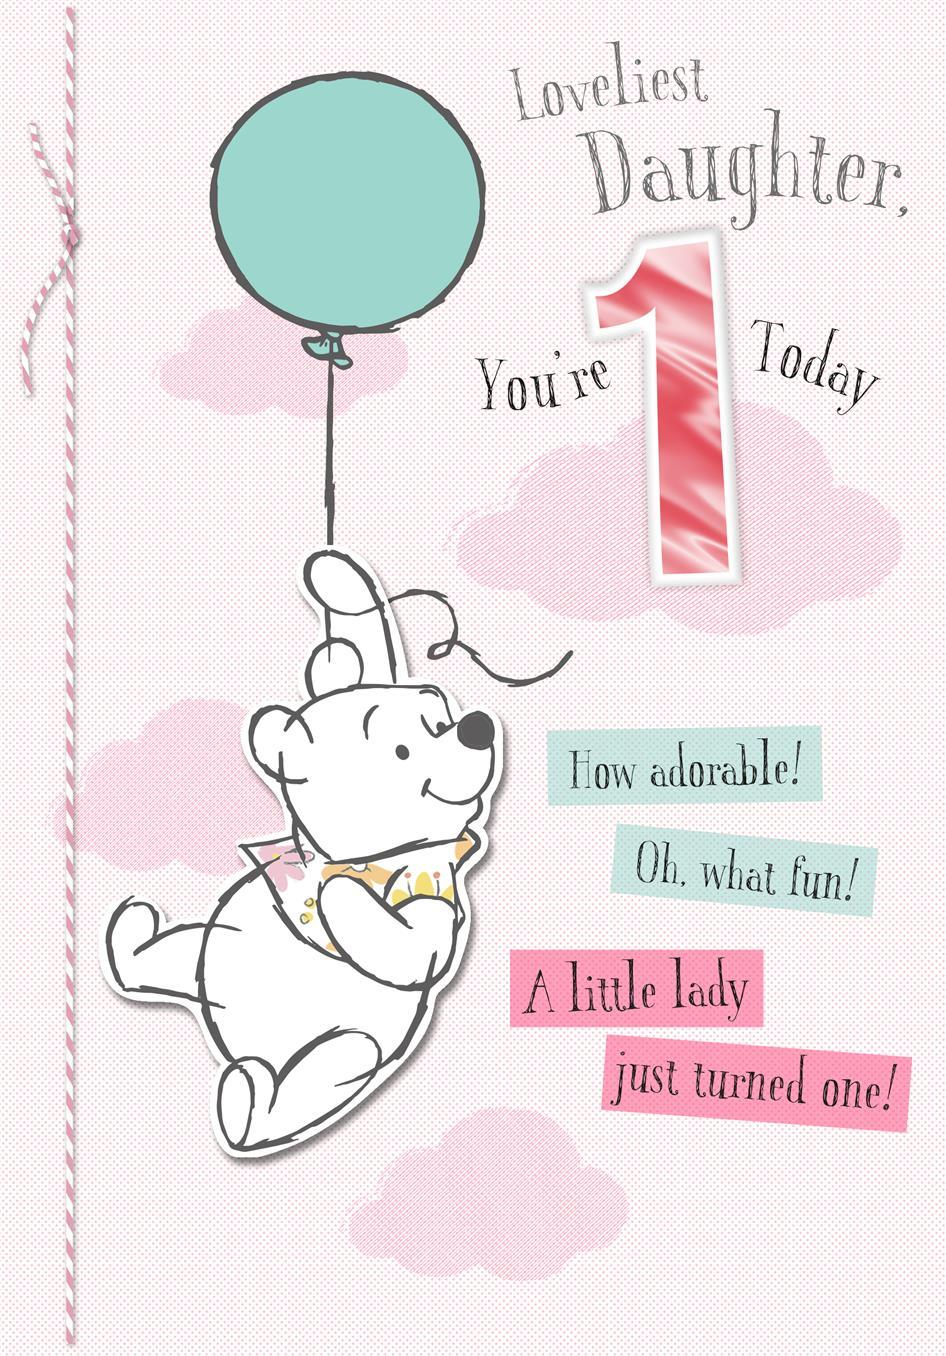 1st Loveliest Daughter Card